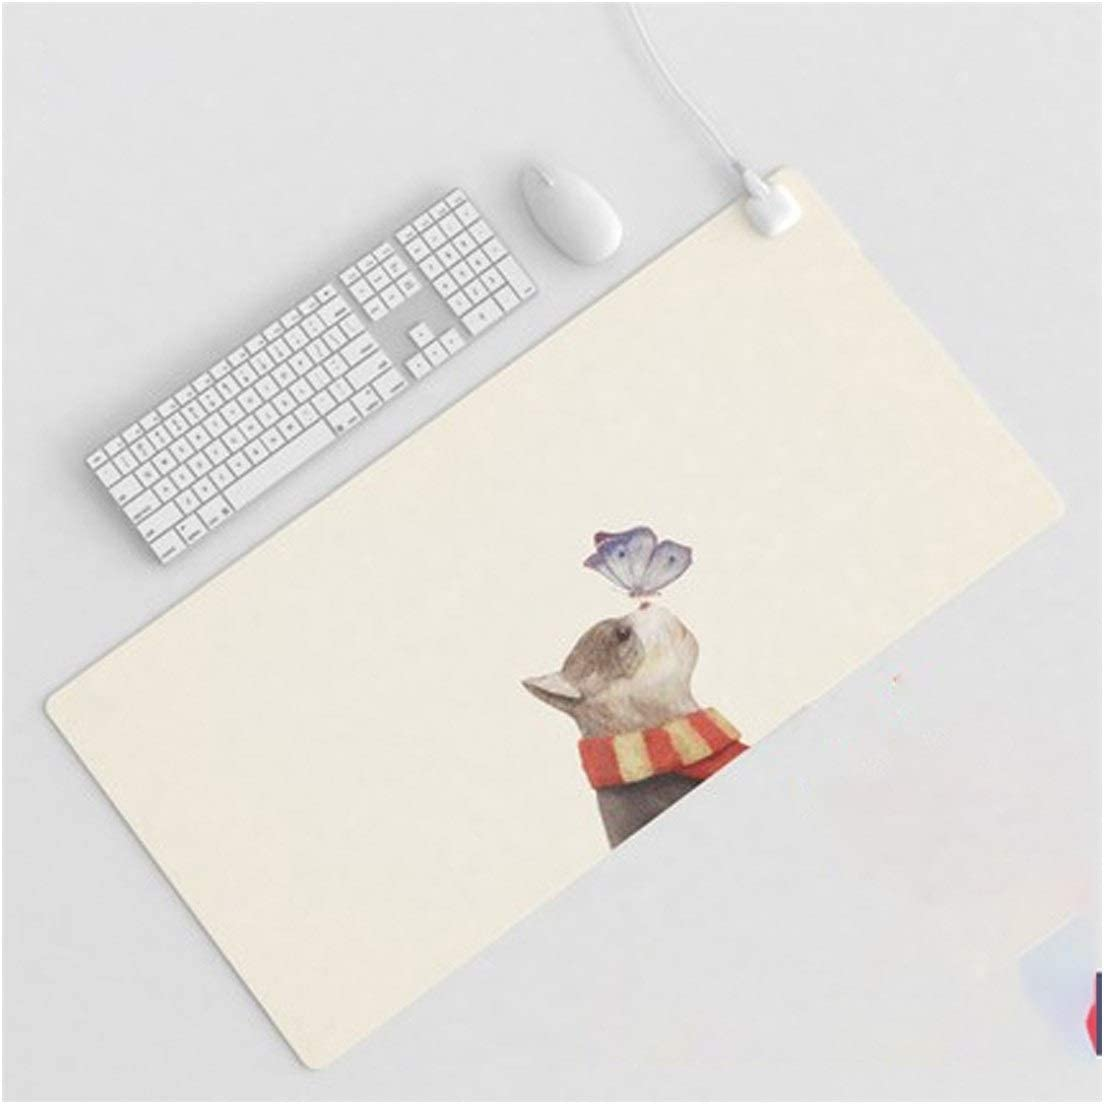 Waterproof and Leakproof Intelligent Timing Warm Table Mat Oversized Heating Mouse Pad Office Computer Desktop Student Writing Pad 15 Seconds Fast Heating Color : D